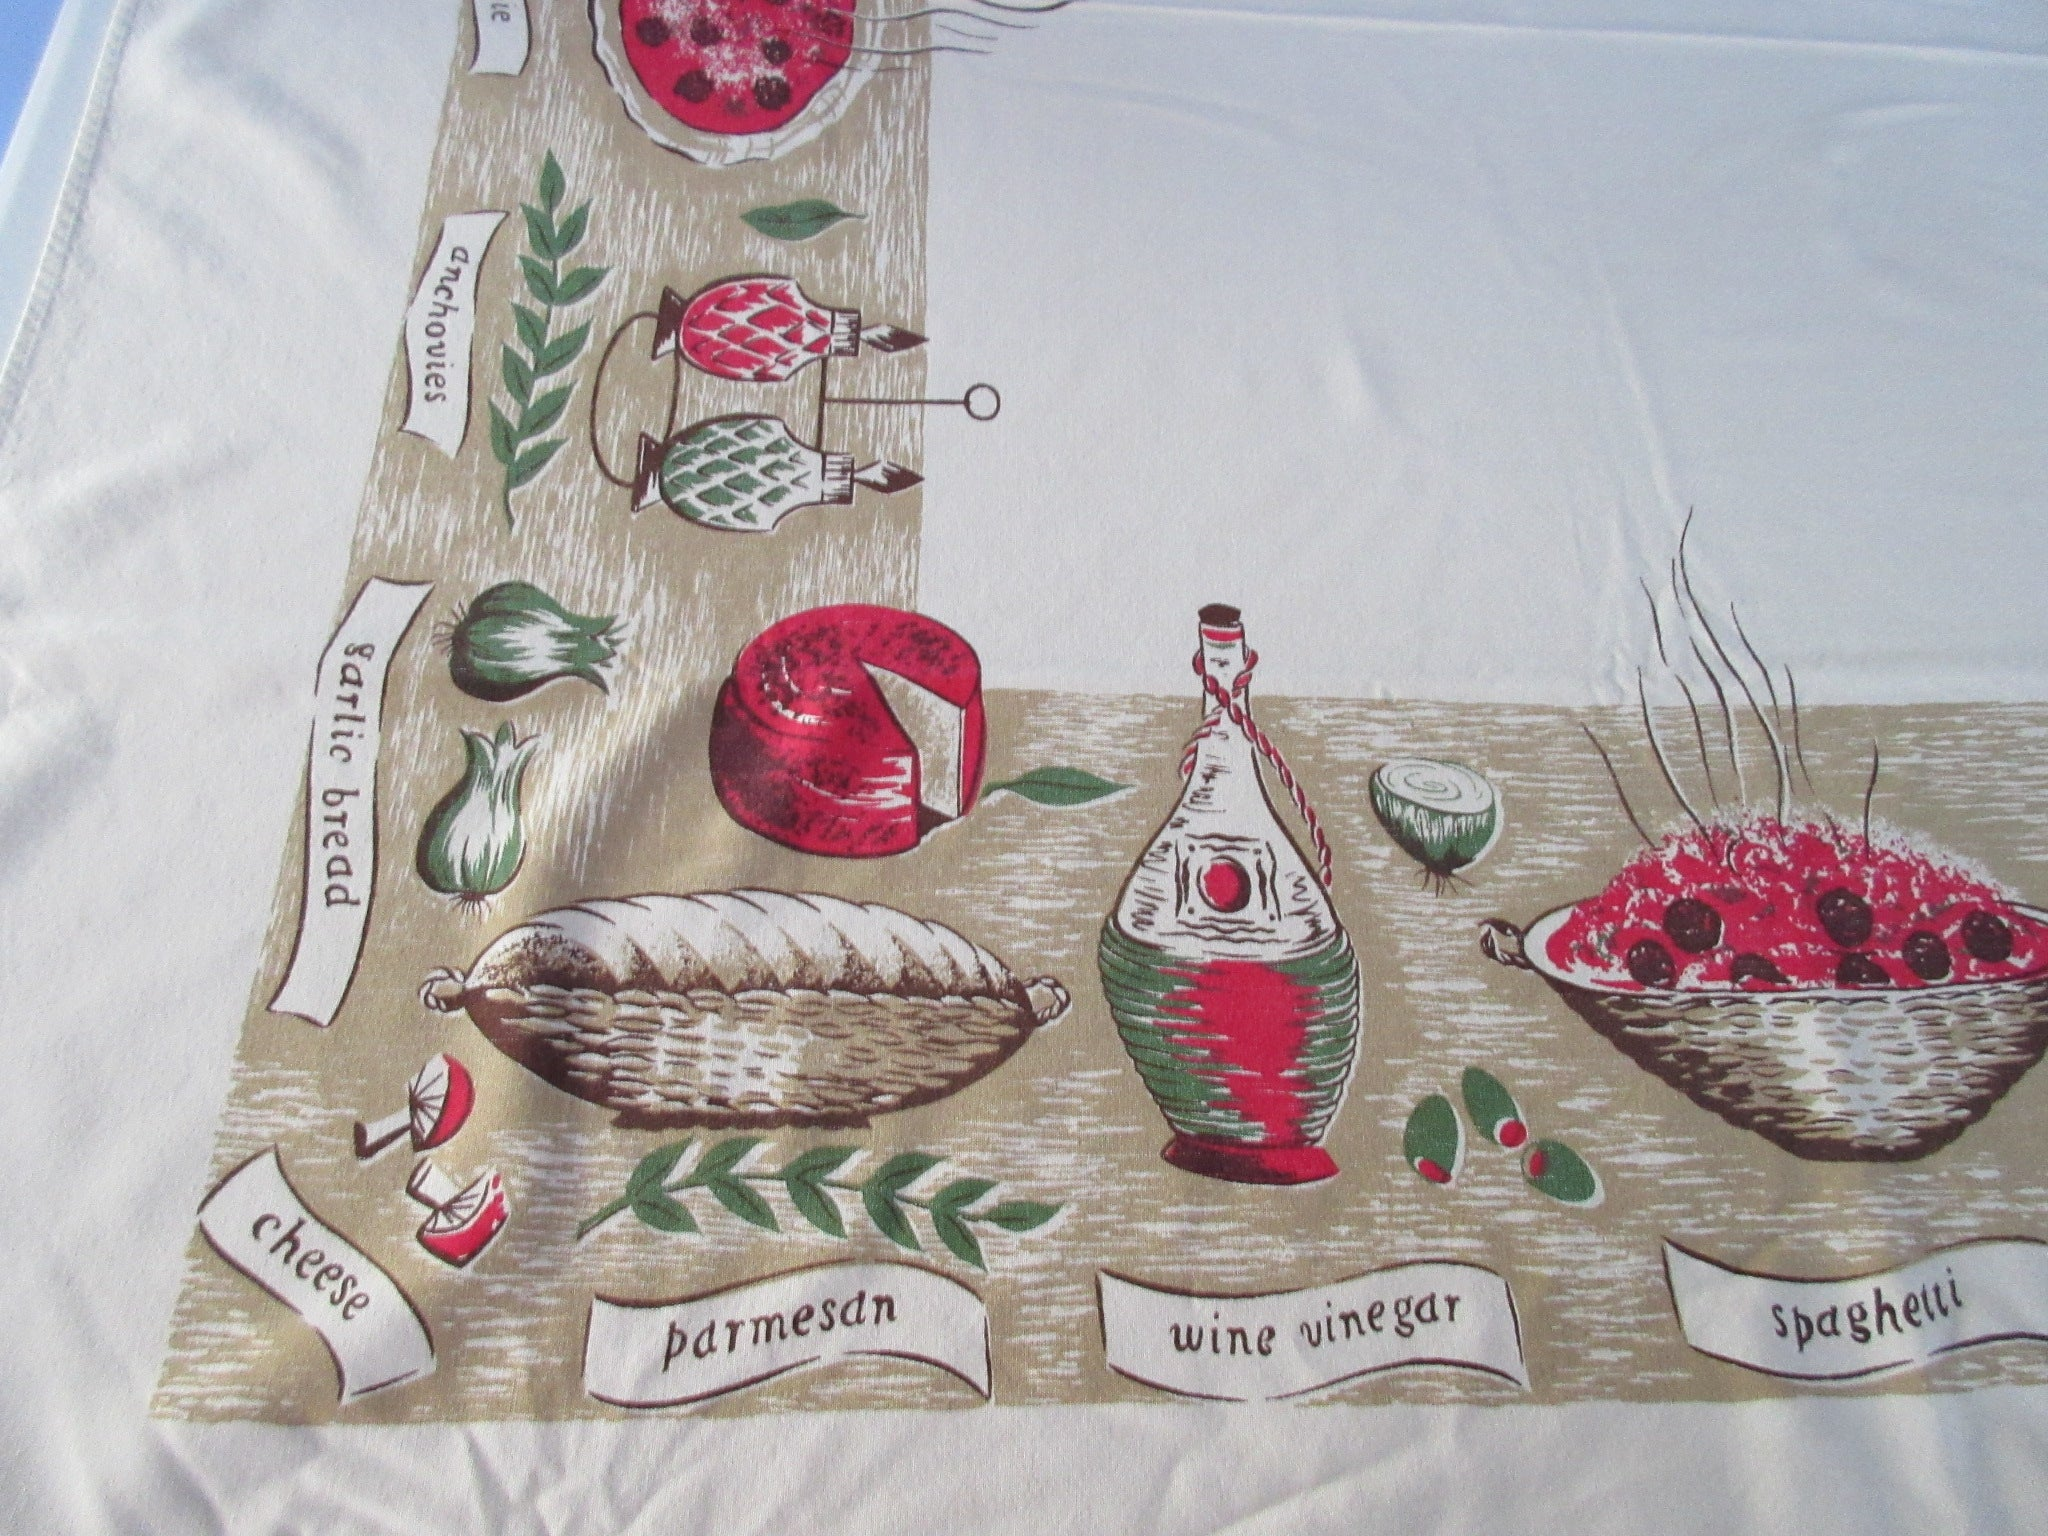 HTF Larger CHP Italian Dinner Pizza Spaghetti Novelty TAN Vintage Printed Tablecloth (79 X 44)